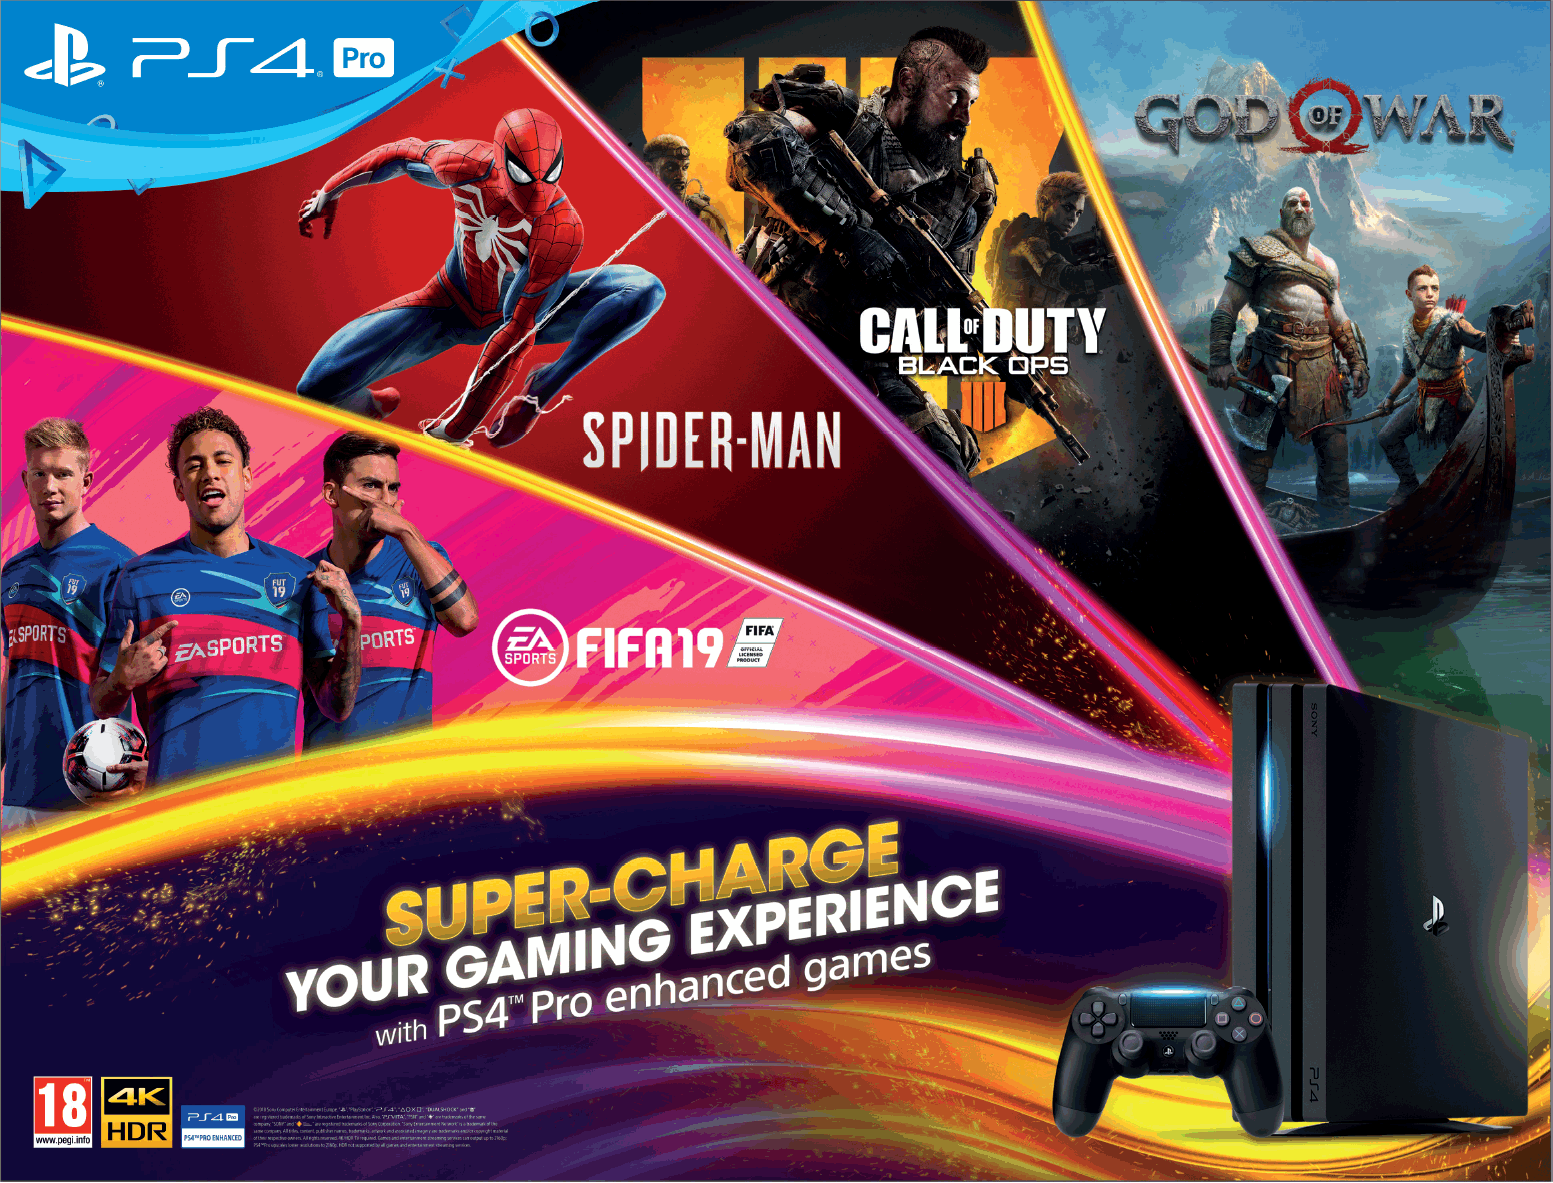 Play Station 4 Pro Super Charge Super Gaming Experience Ad - Advert